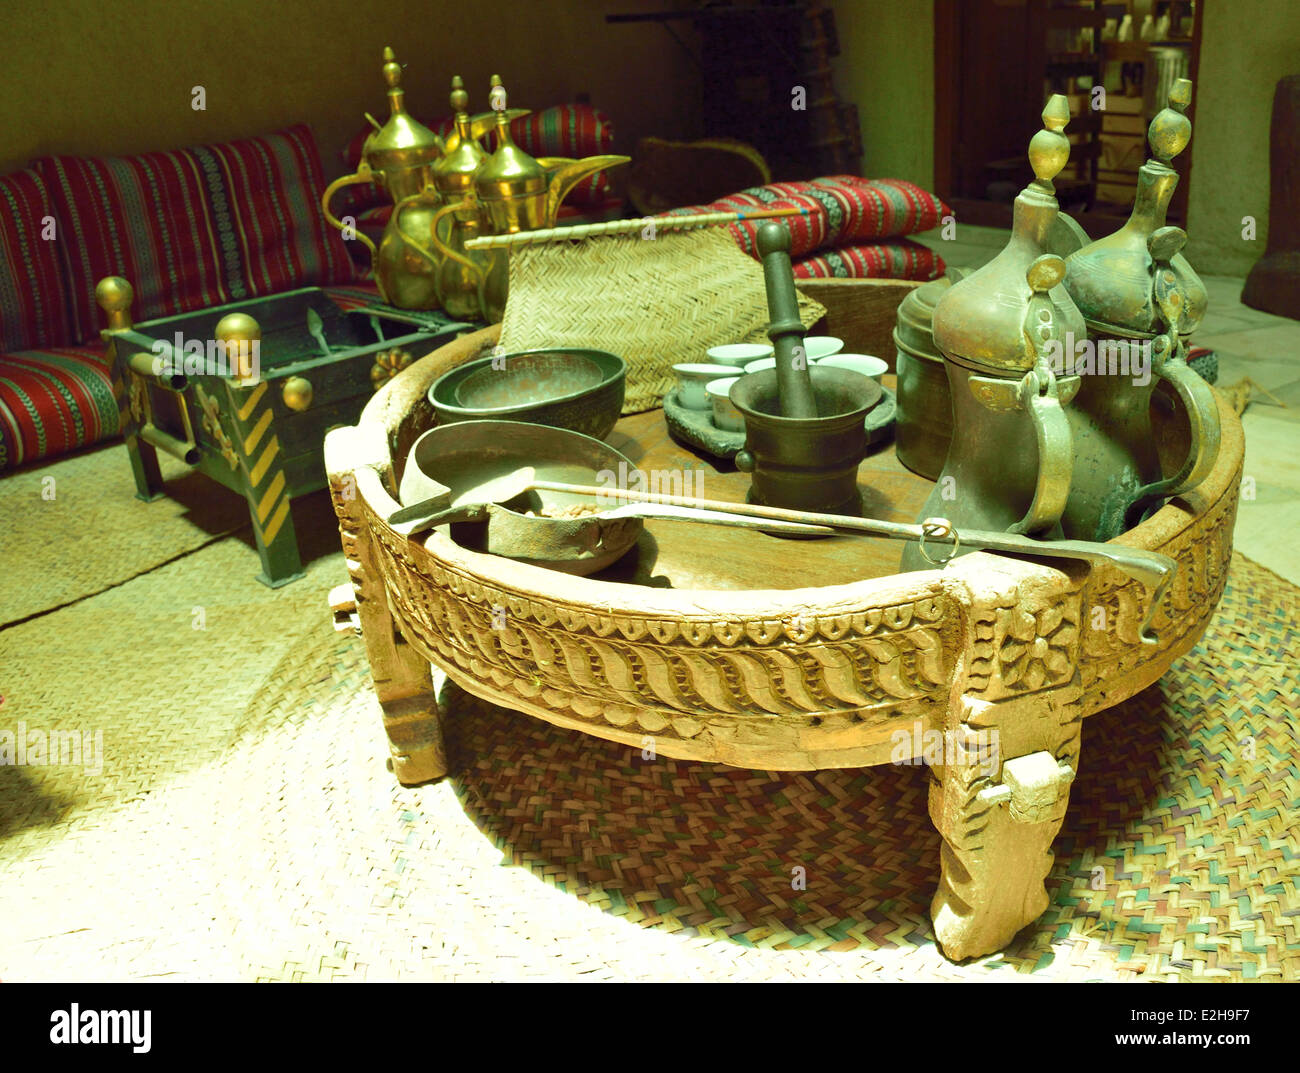 Old coffee table in new Coffee shop in Dubai - Stock Image